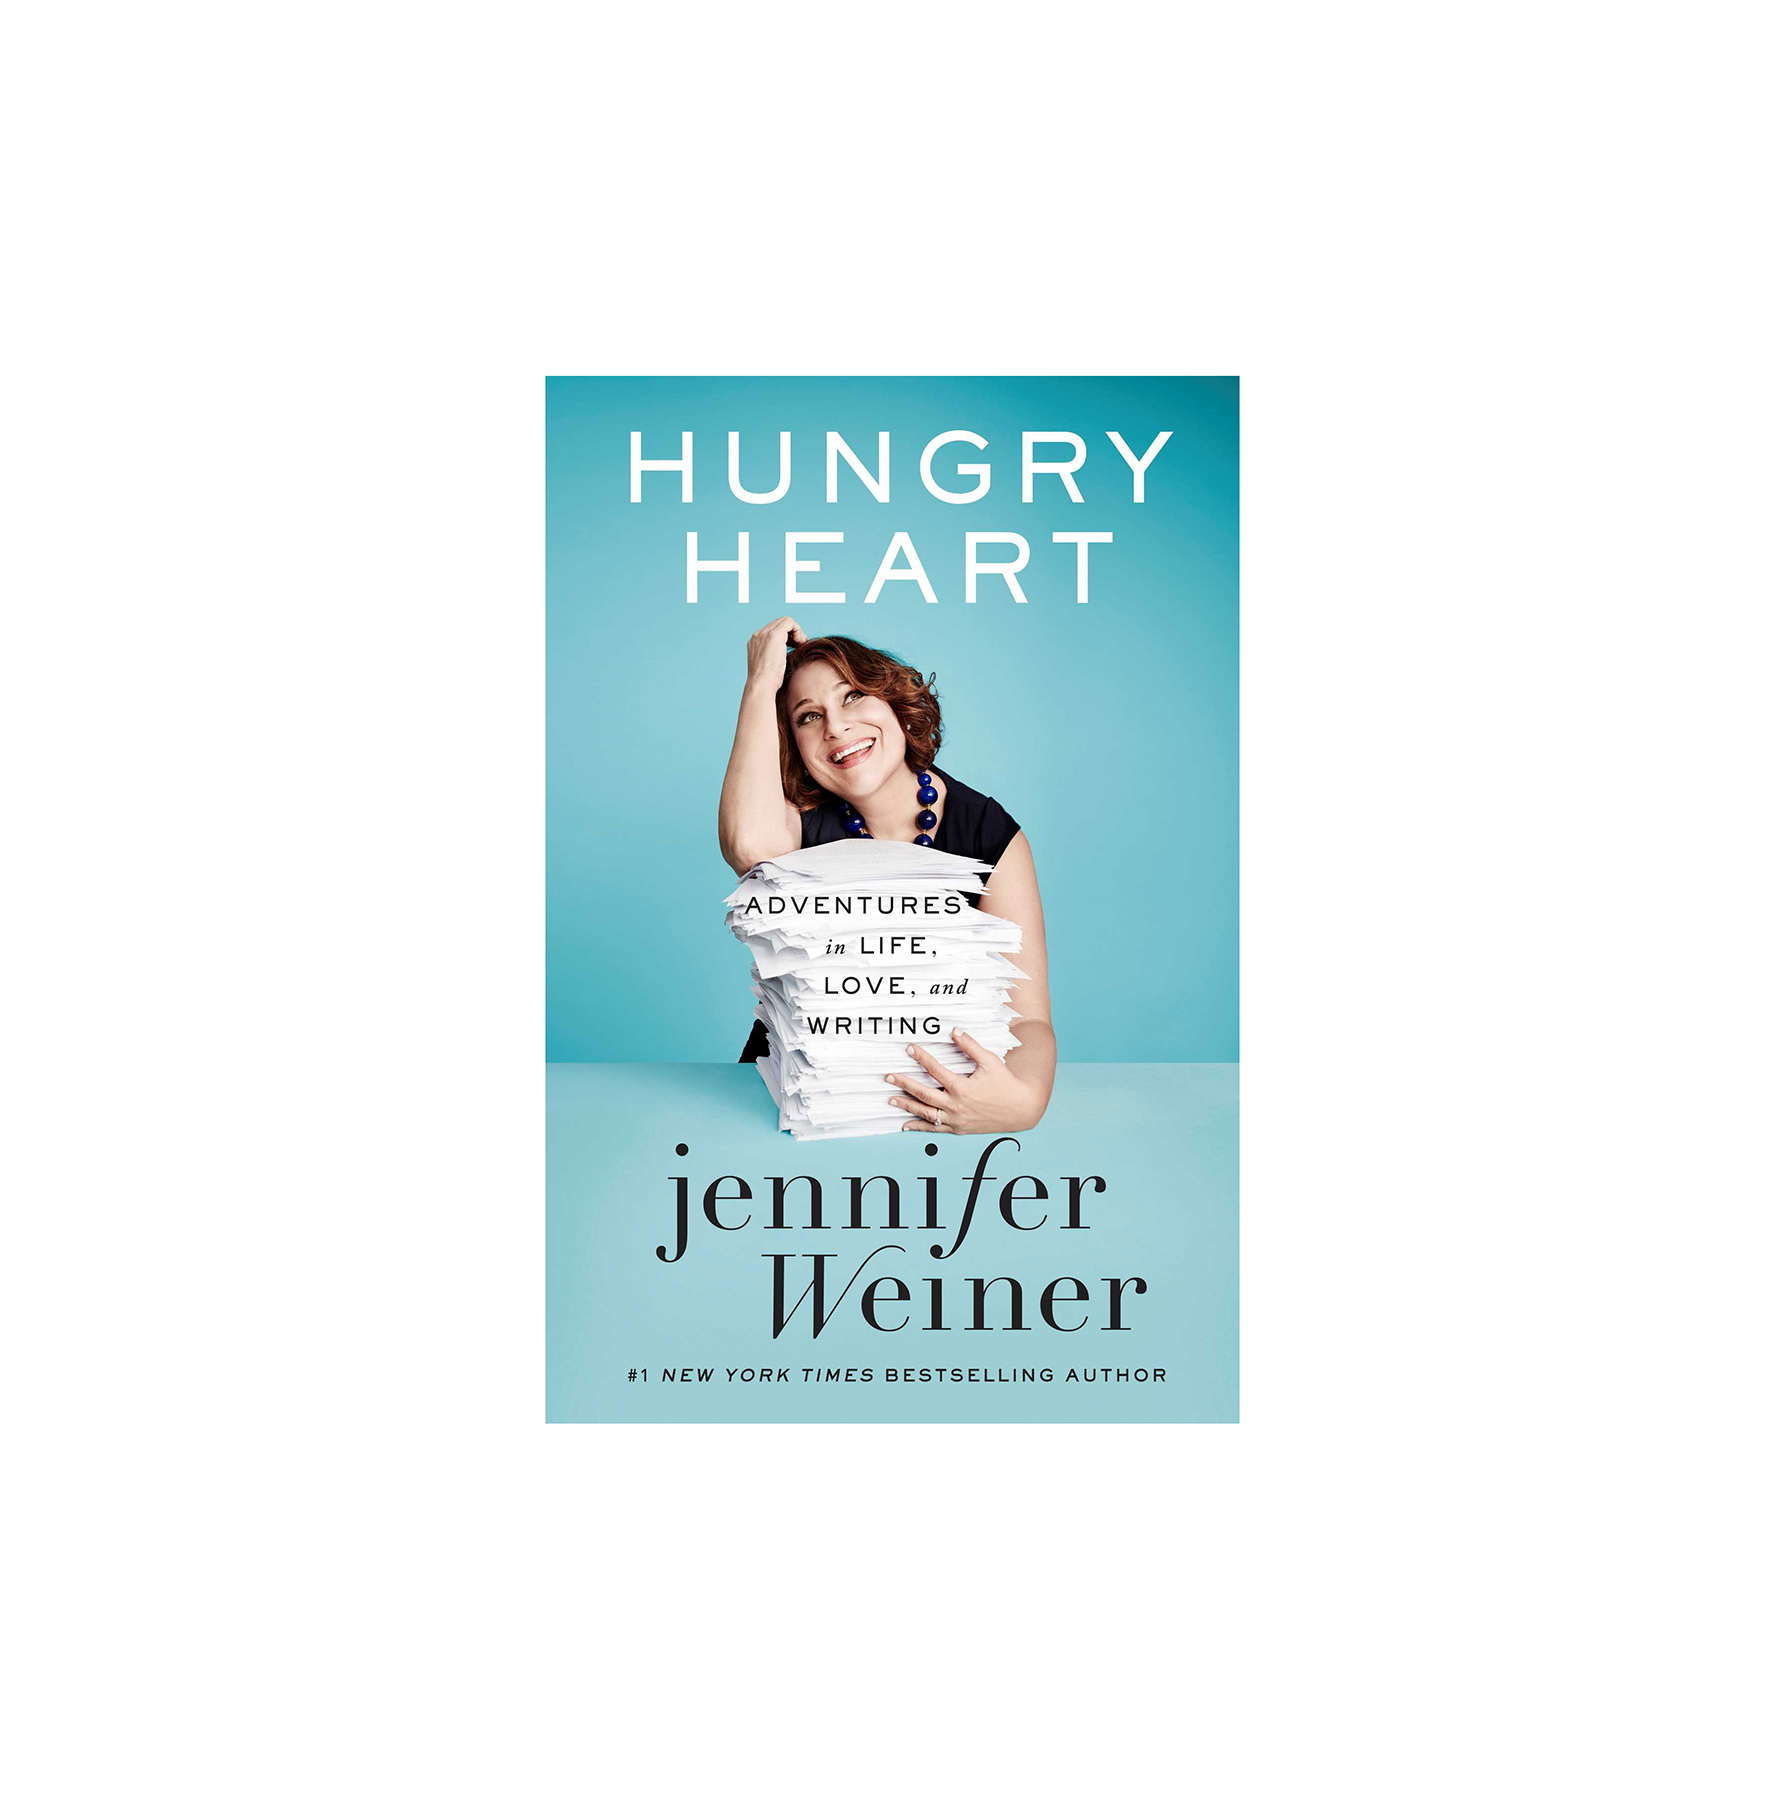 Hungry Heart, by Jennifer Weiner